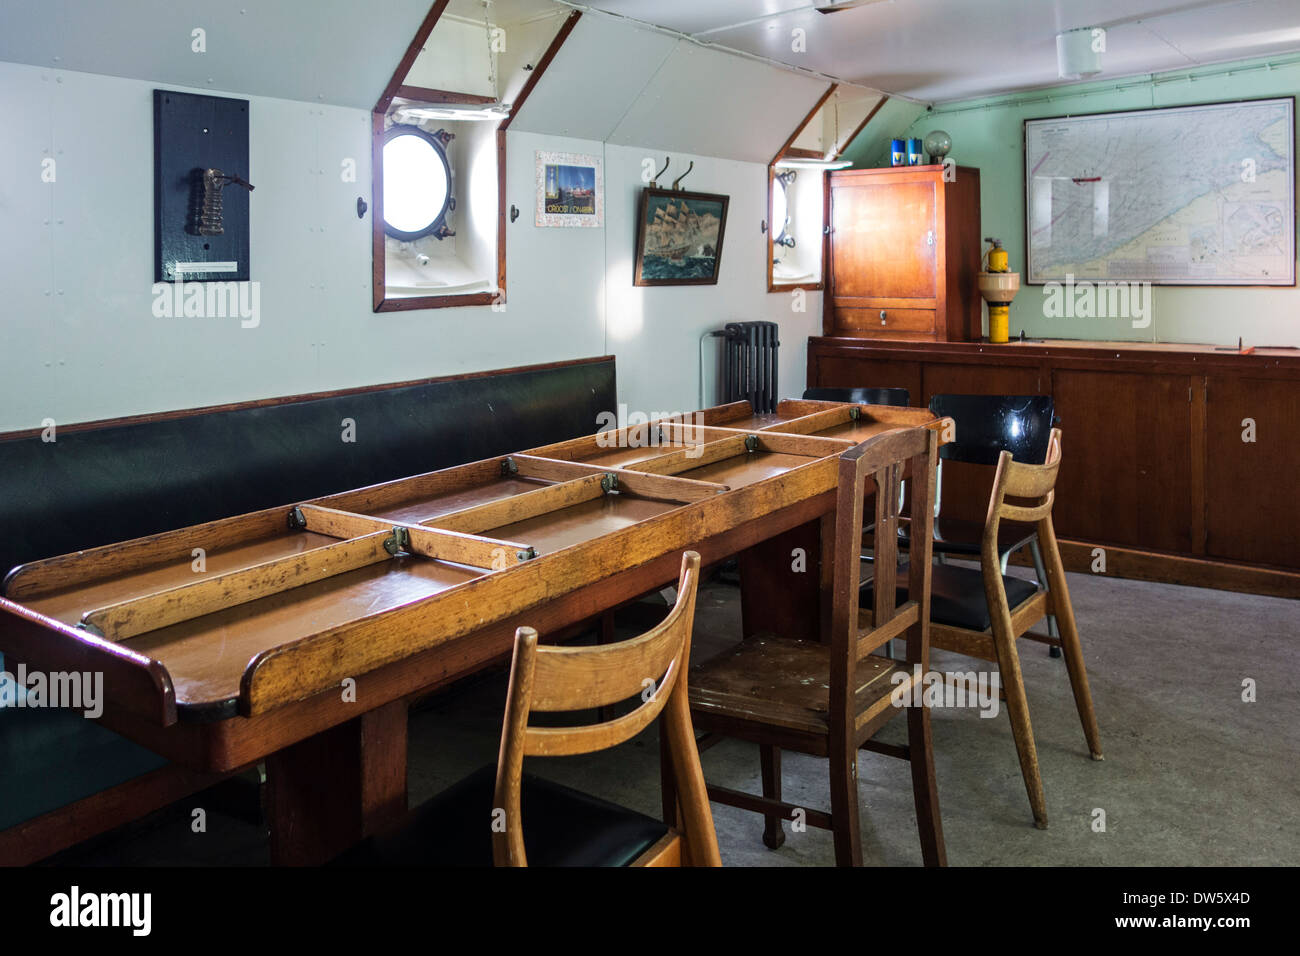 Special dinner table divided in compartments with wooden boards to prevent food from gliding in mess room on board of ship - Stock Image